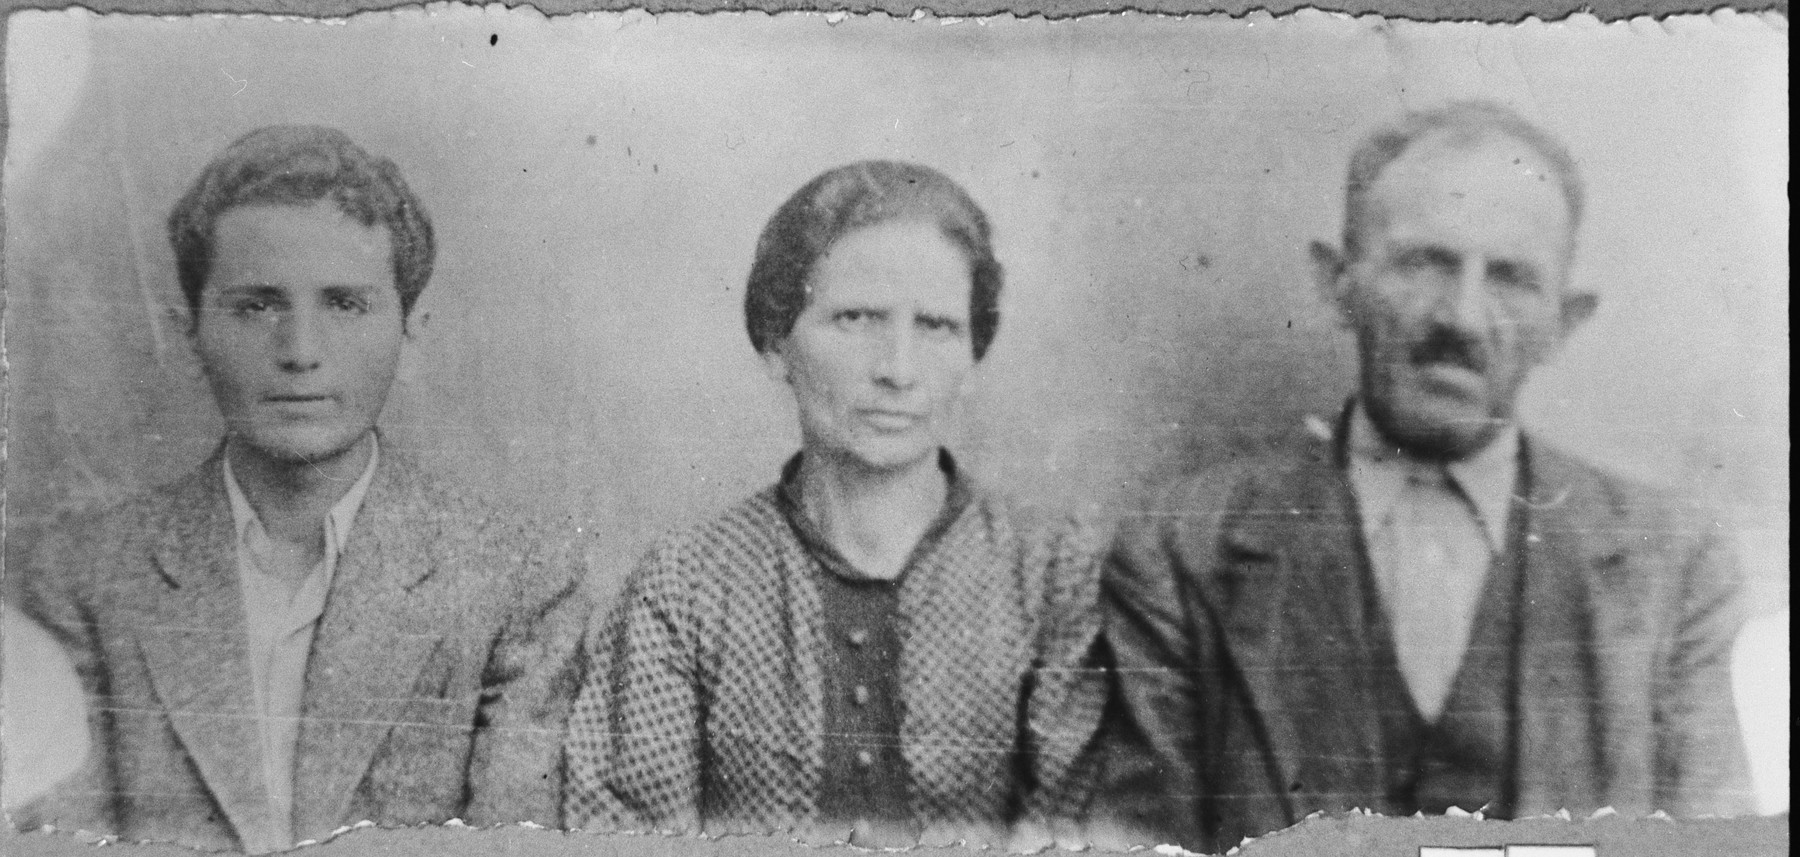 Portrait of Aron Aroesti, his wife, Dona, and his son, Albert.  Aron was a miller and Albert, a patcher.  They lived at Karagoryeva 58.